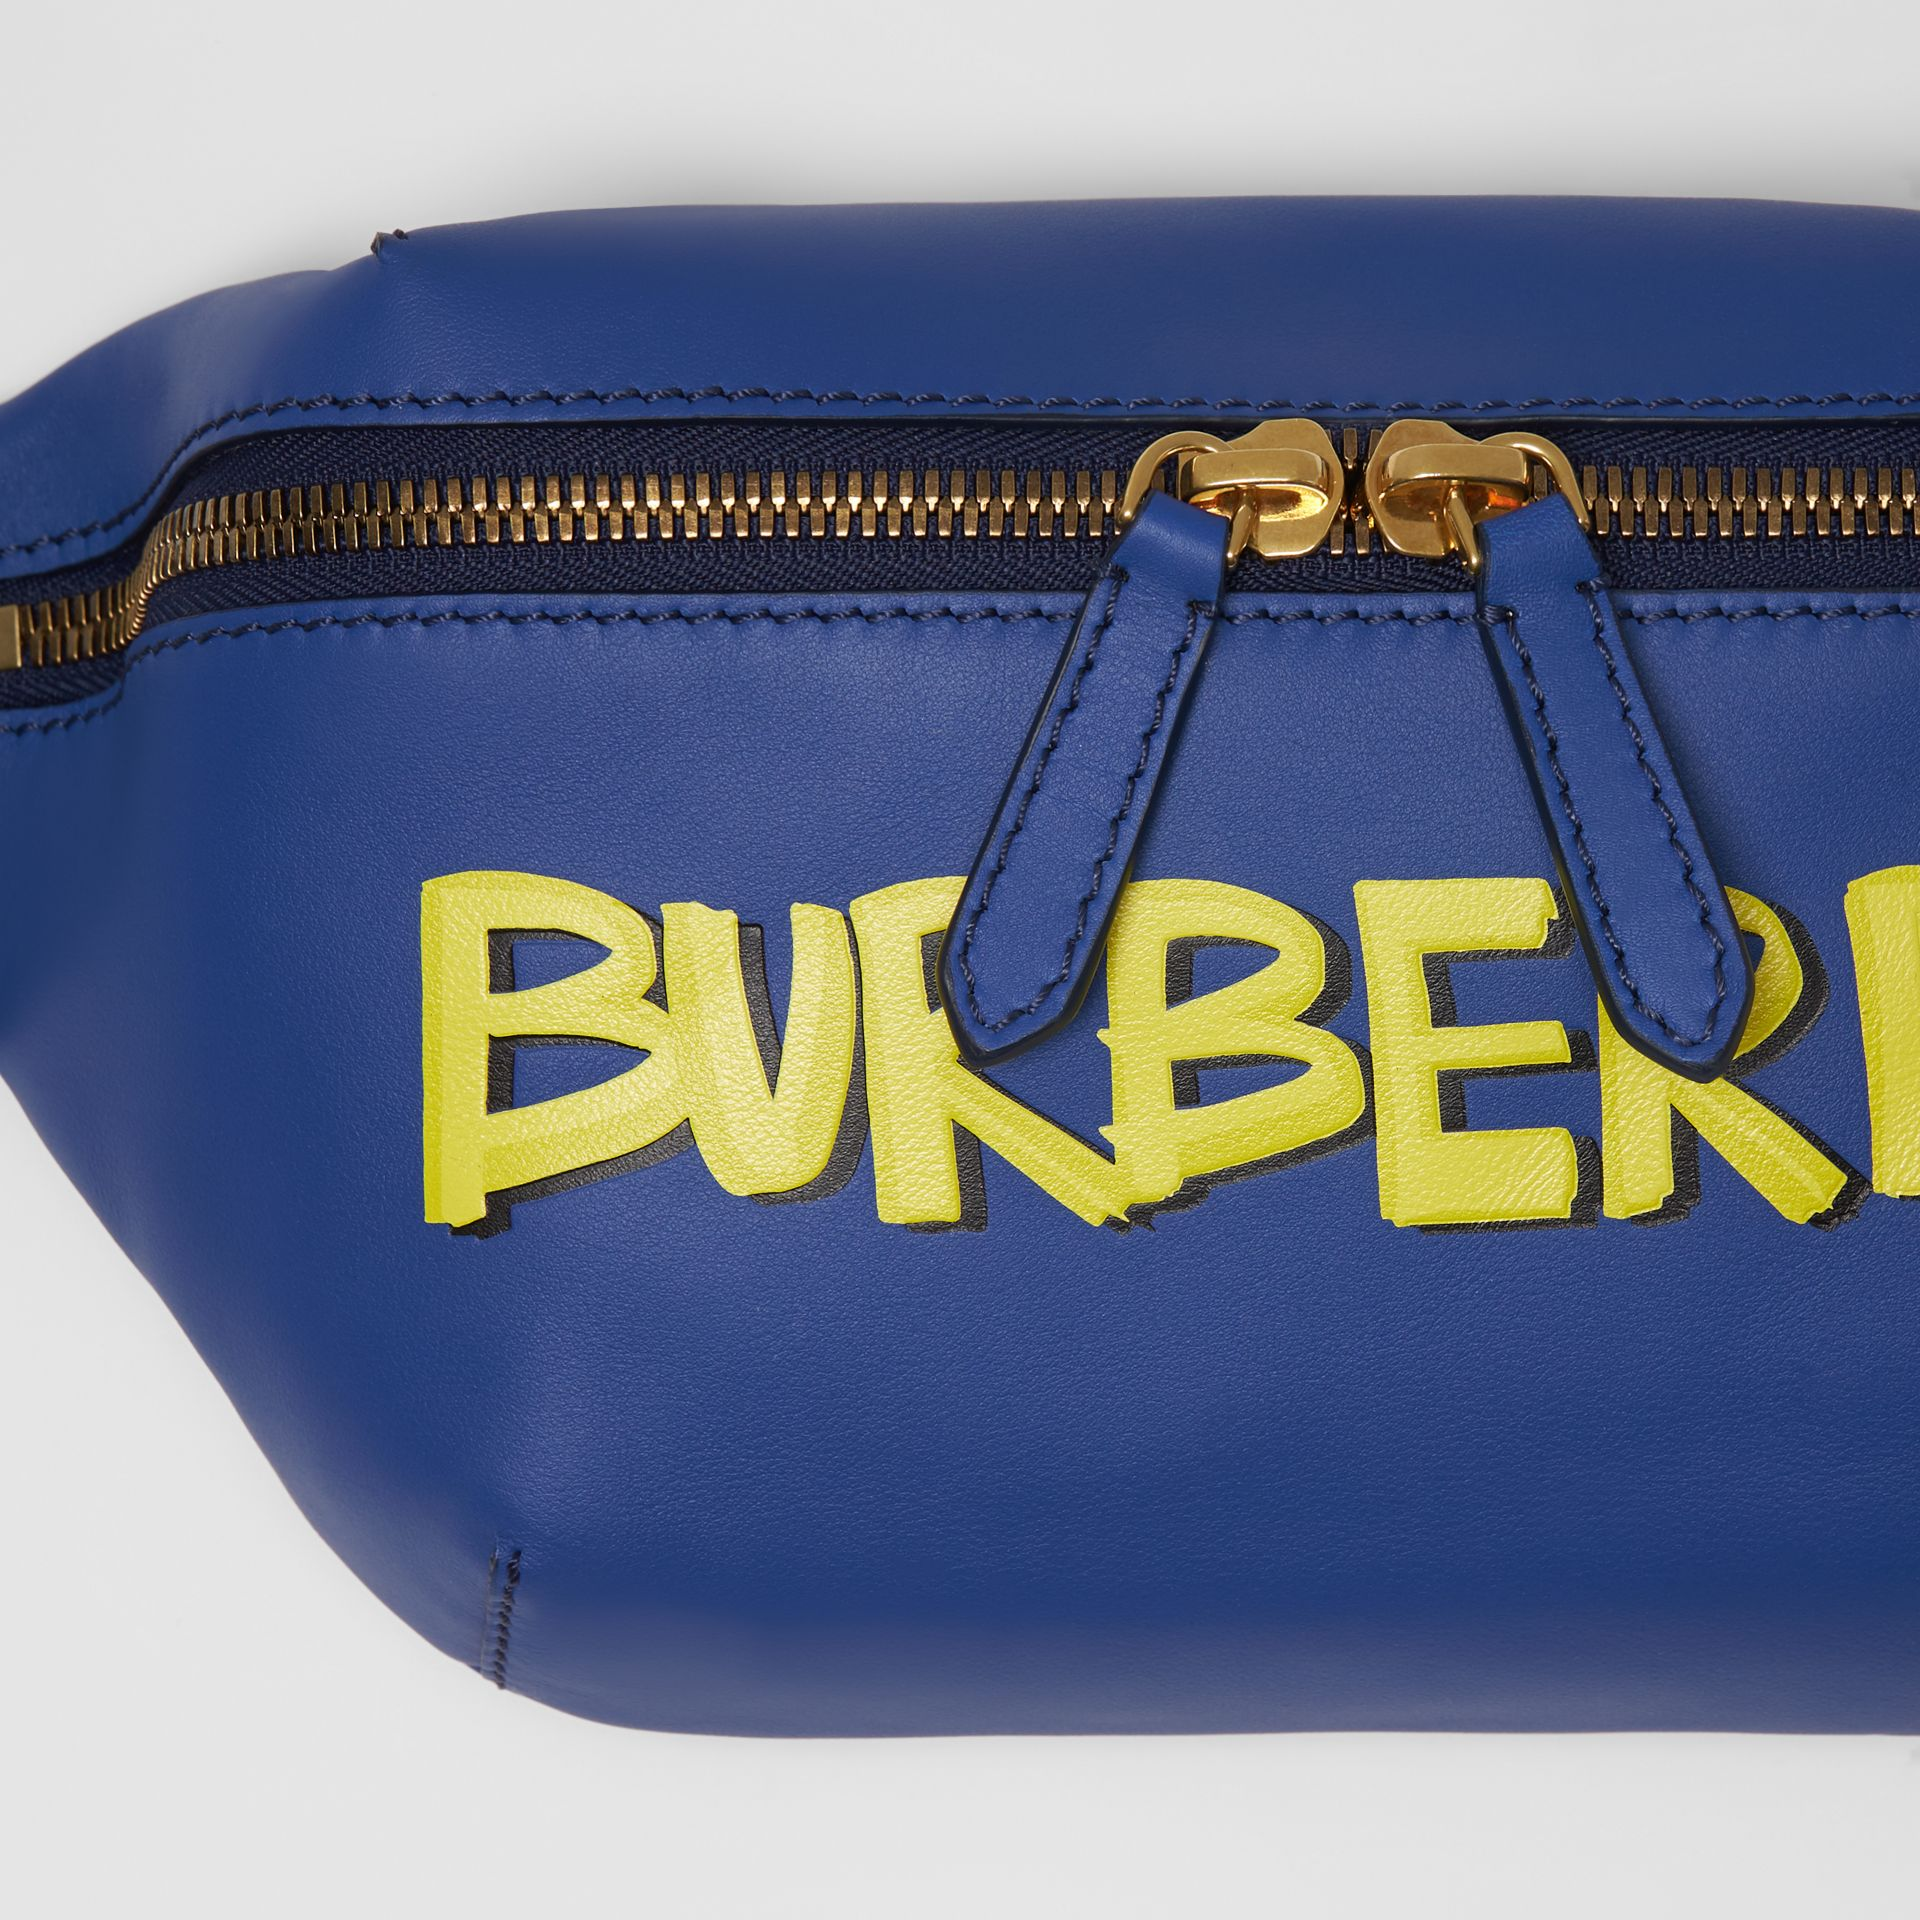 Medium Graffiti Print Leather Bum Bag in Denim Blue | Burberry - gallery image 1